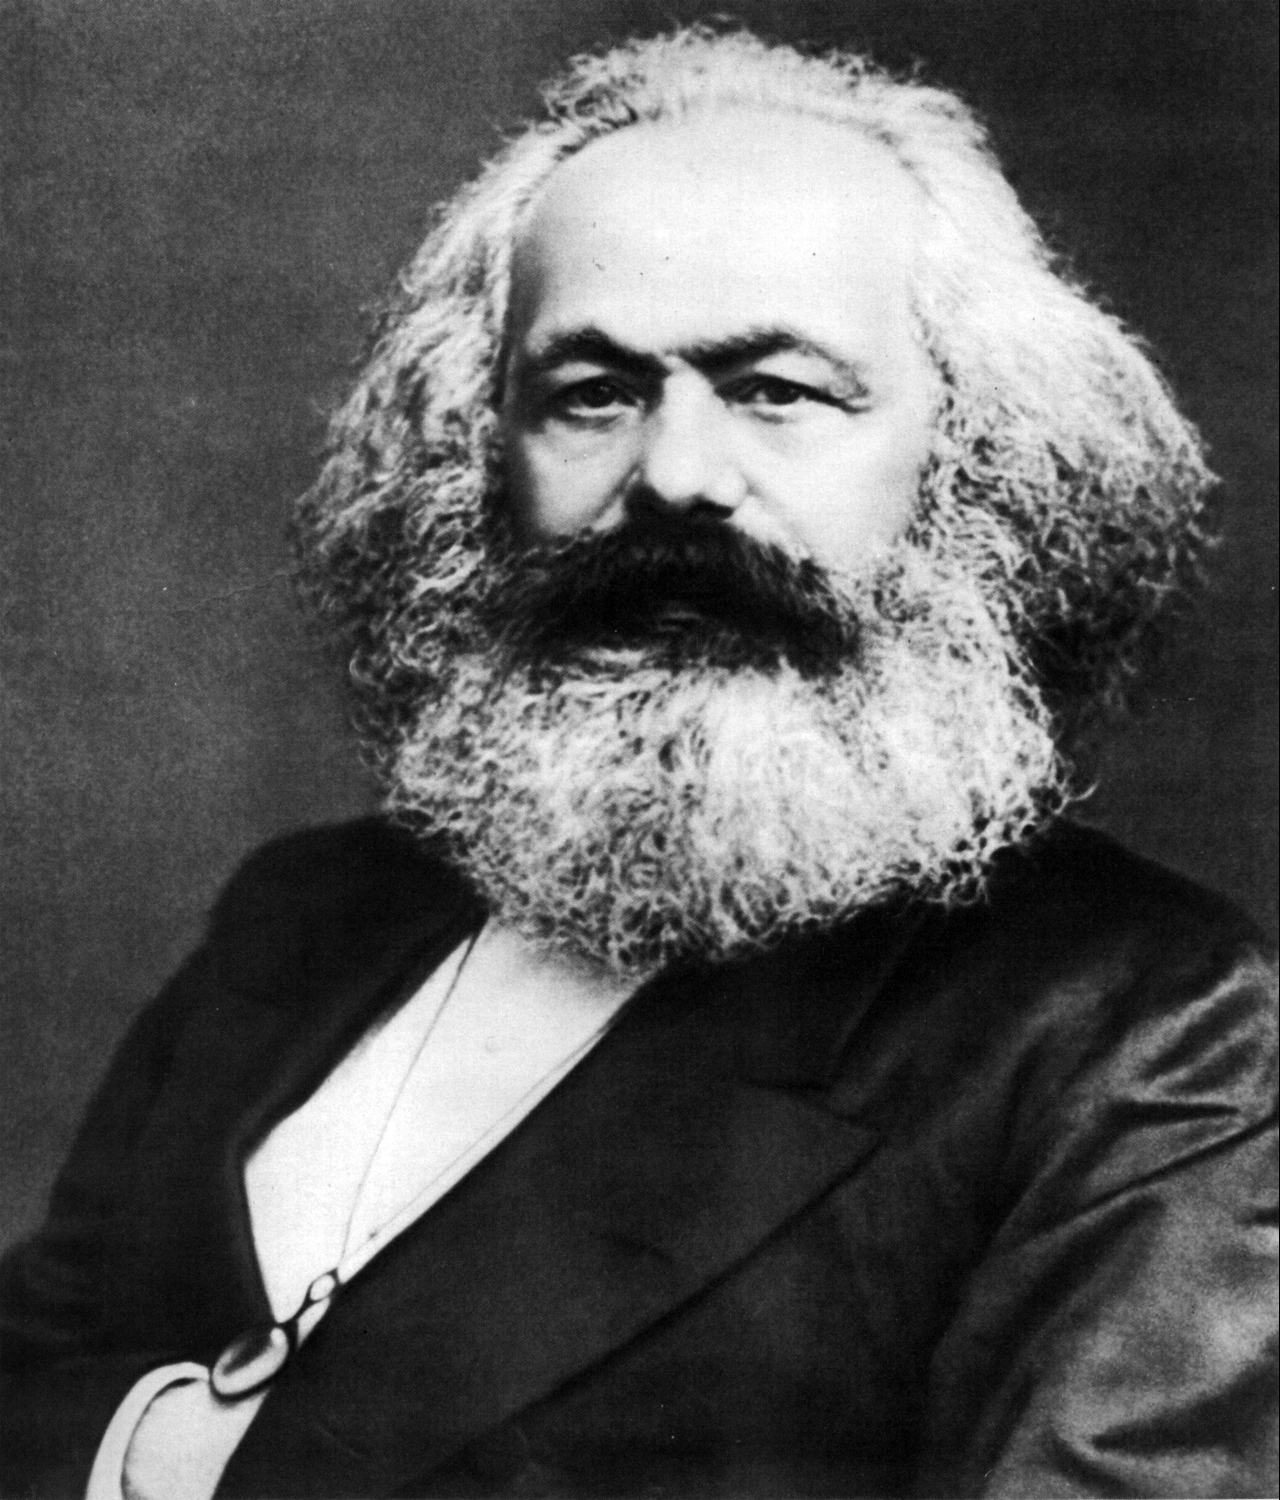 http://upload.wikimedia.org/wikipedia/commons/f/fc/Karl_Marx.jpg